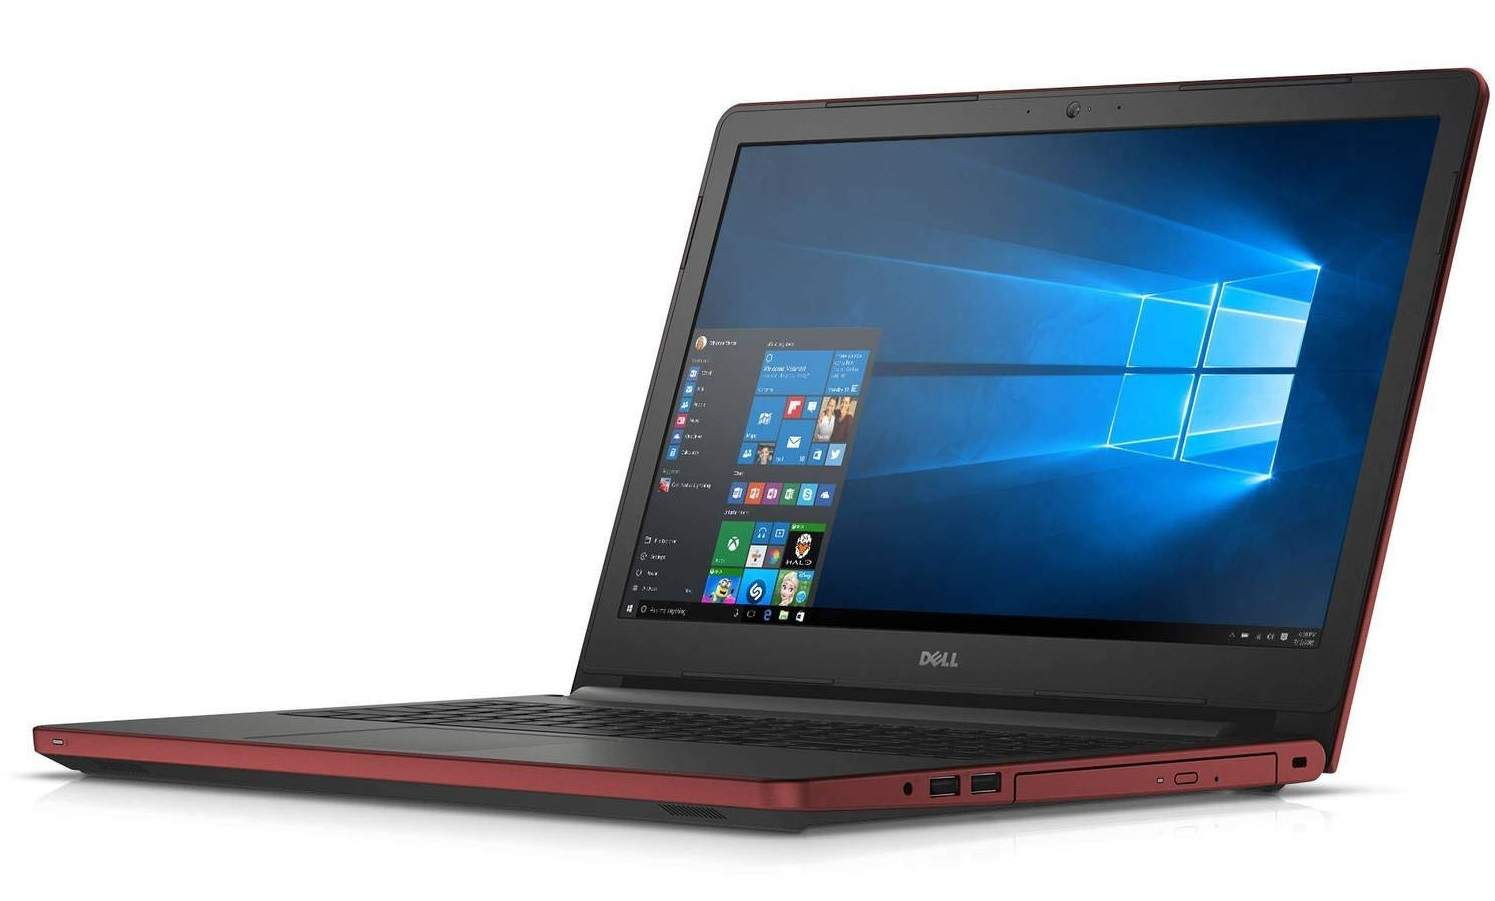 Dell Inspiron 15 Pro High Performance 39.62 Cm (15.6) 2016 Flagship Red Edition Laptop (8 GB, 1 TB, AMD Quad Core, Windows 10)